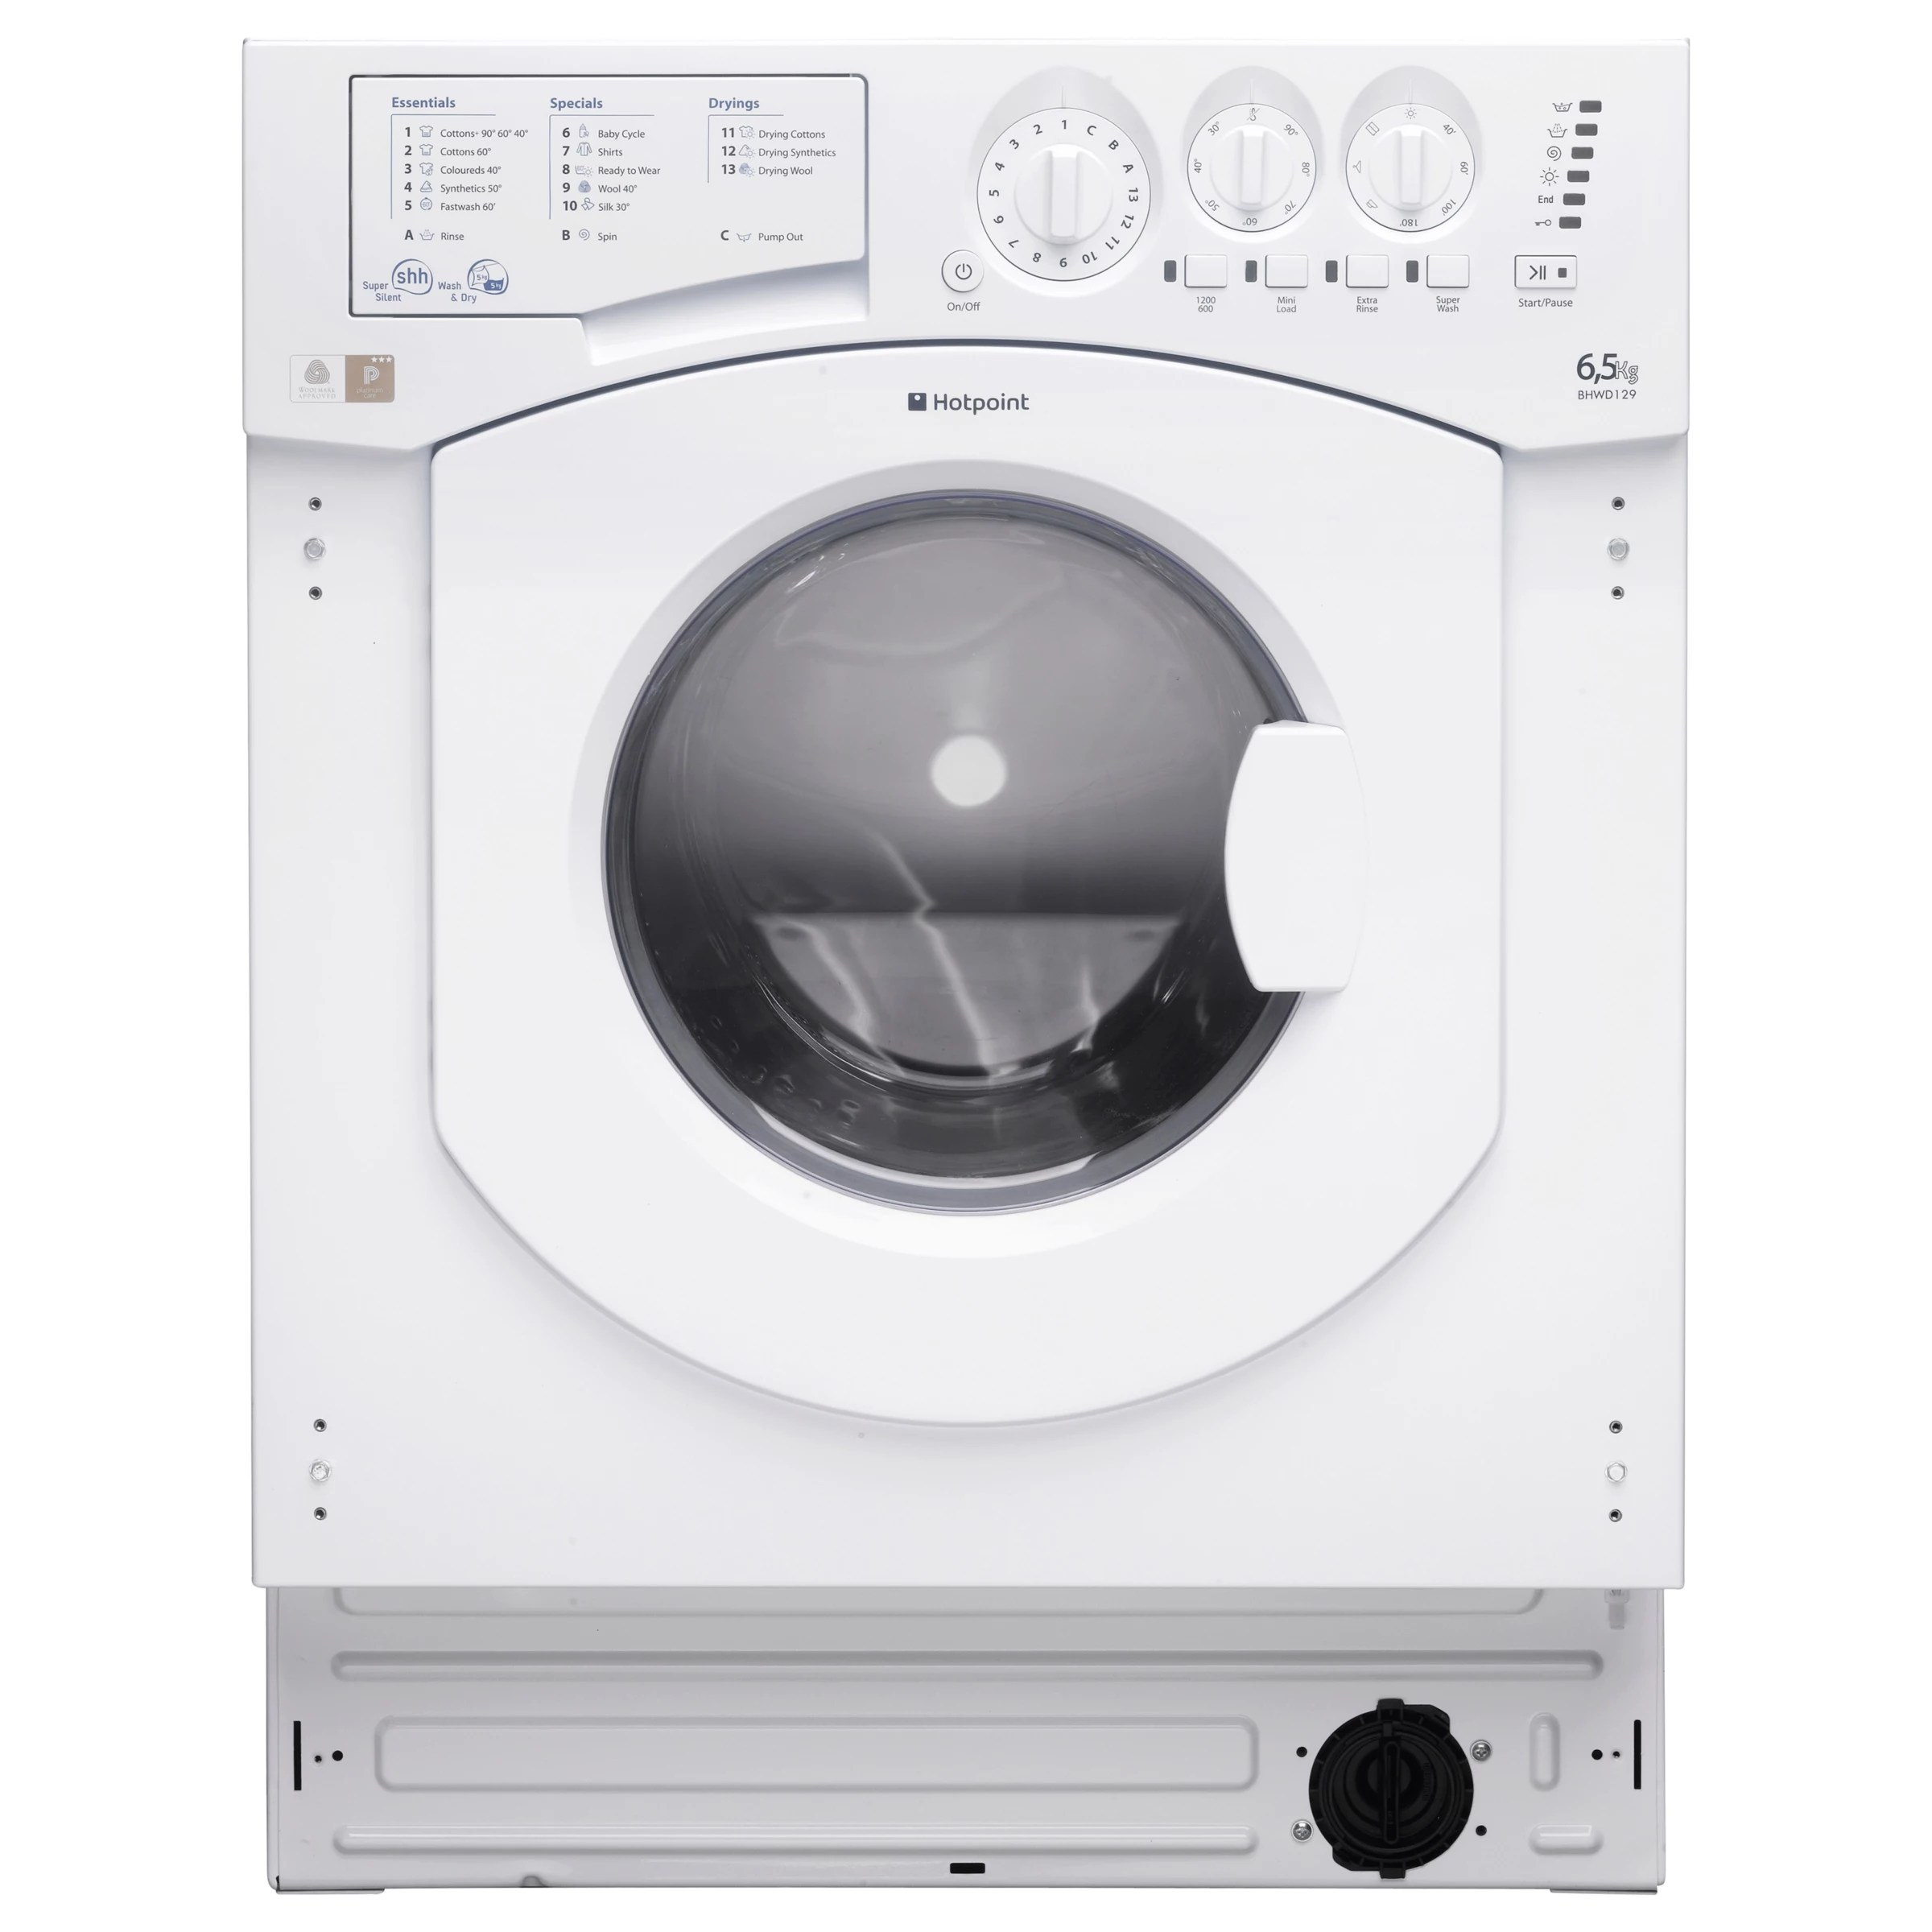 hight resolution of buy hotpoint bhwd129 aquarius integrated washer dryer white online at johnlewis com